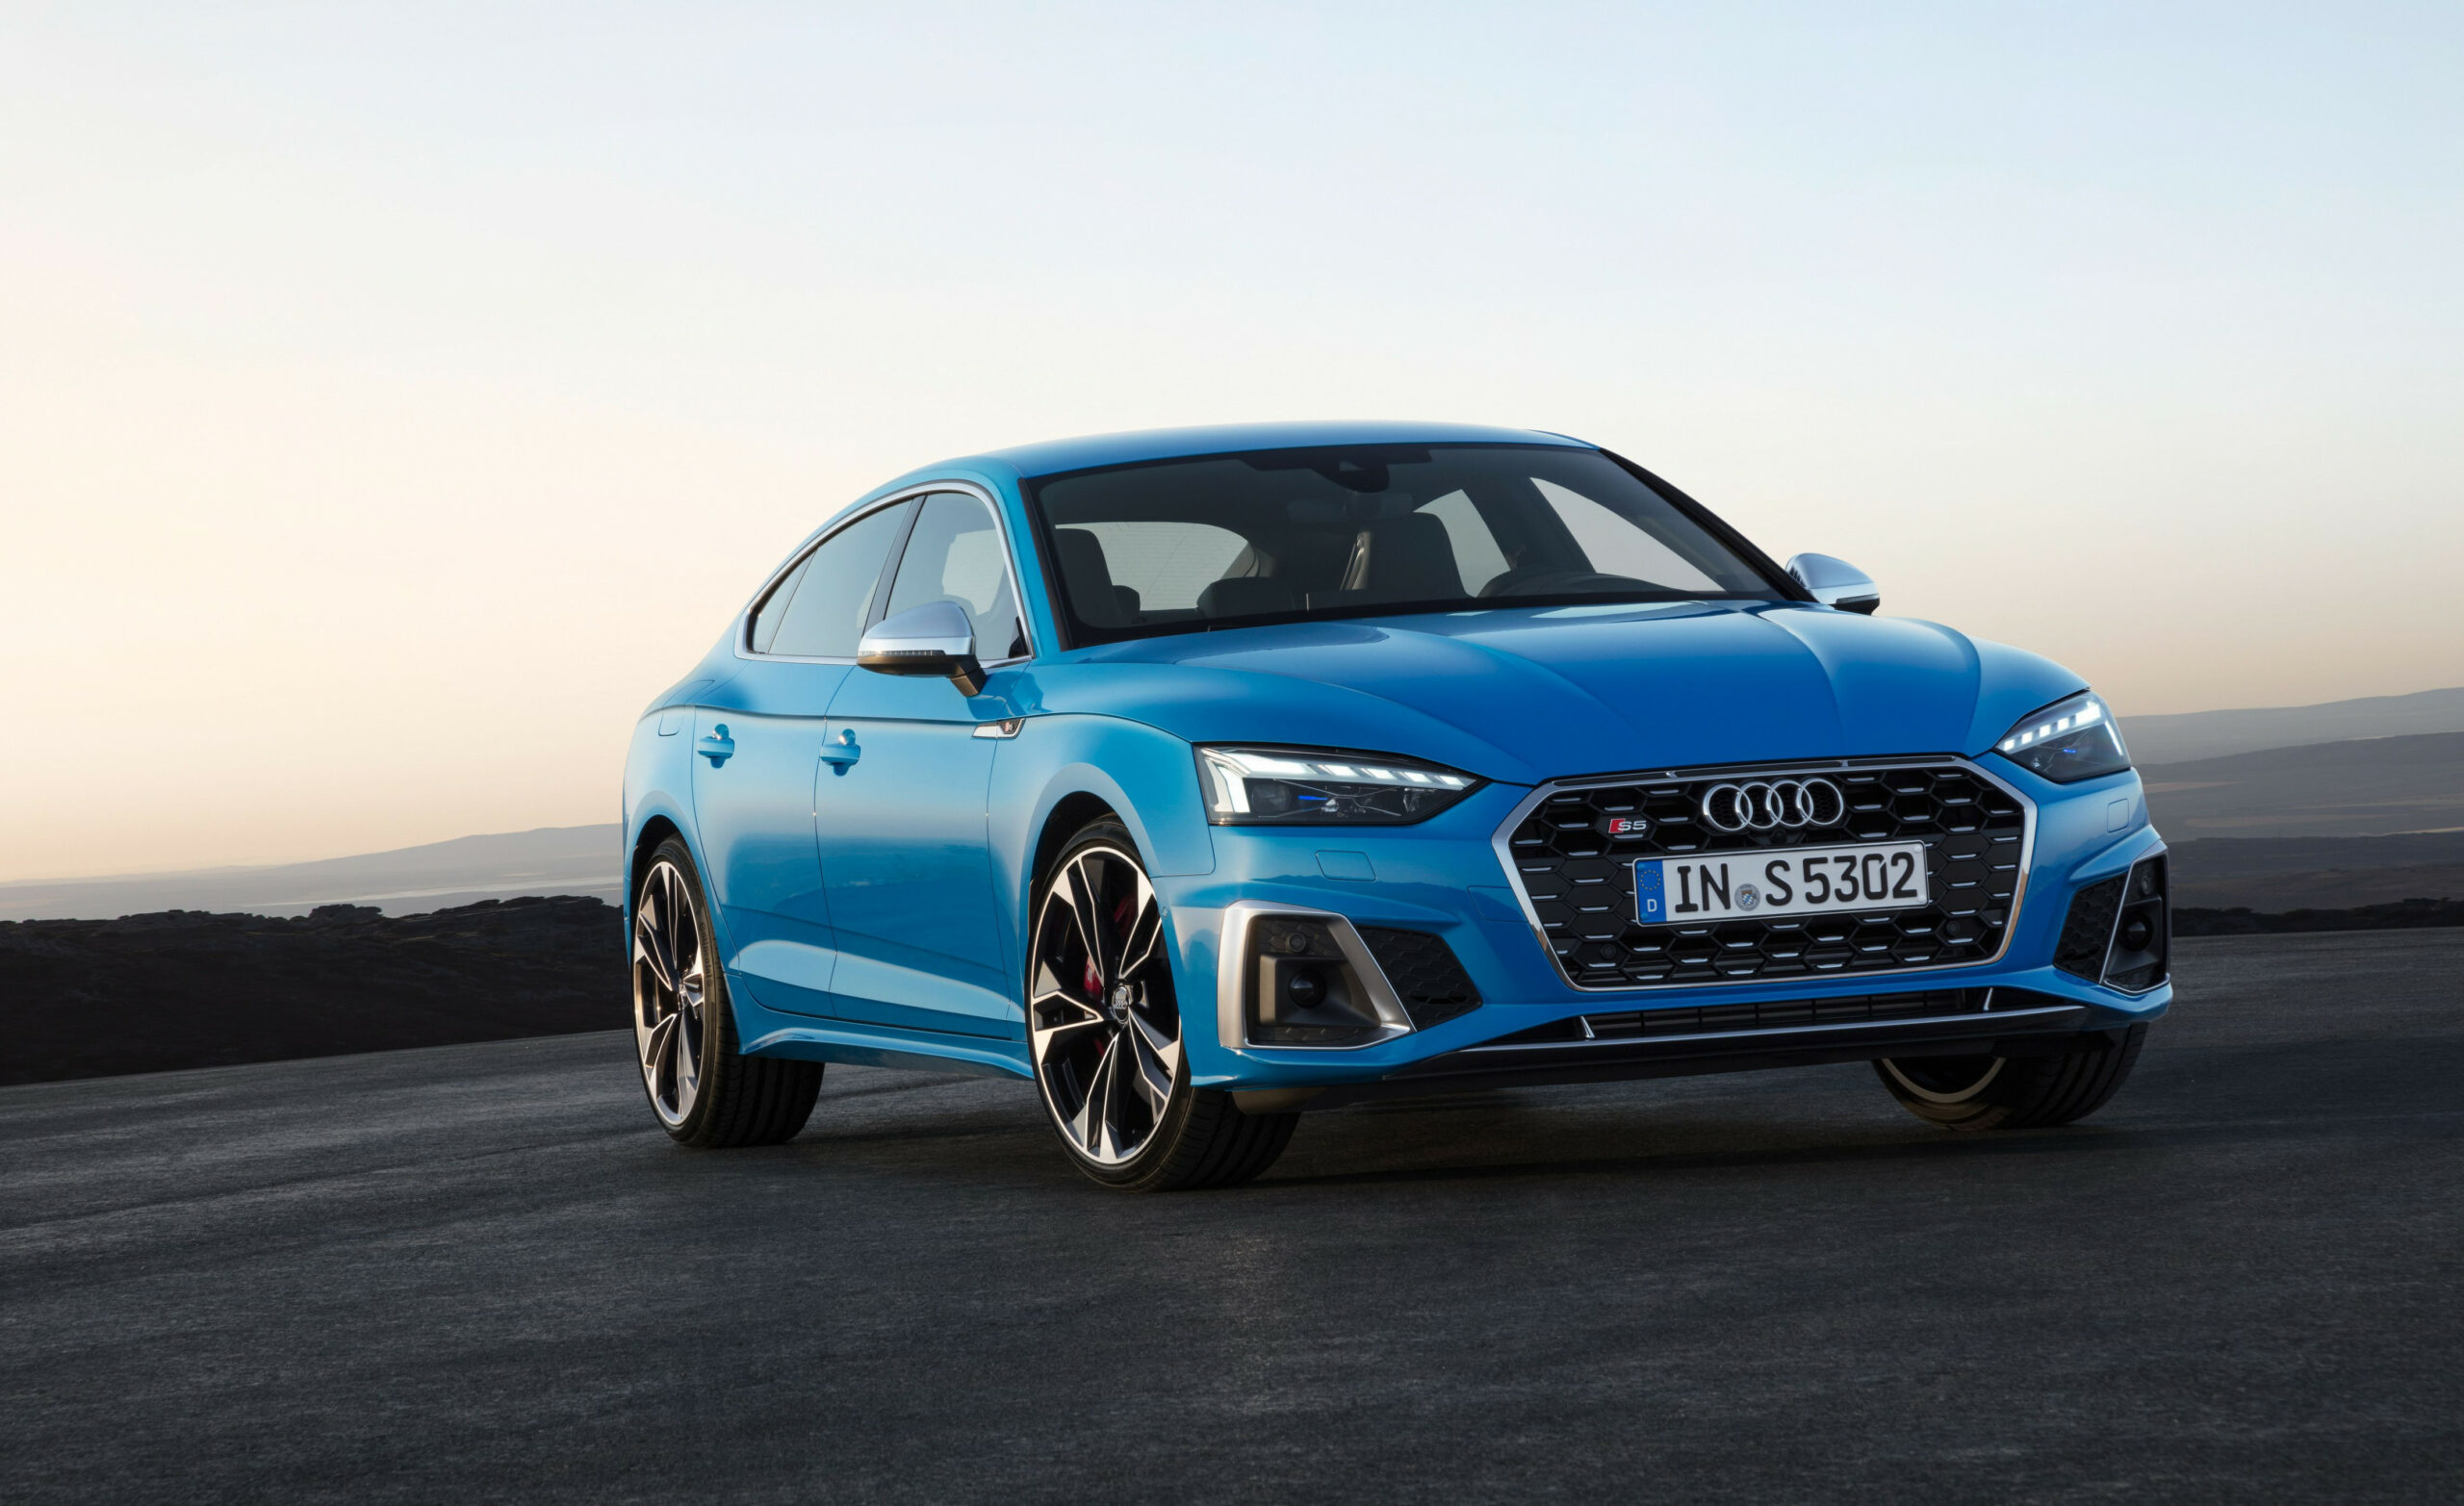 11 Audi S11 Sportback Review, Pricing, and Specs | 2020 Audi Is5